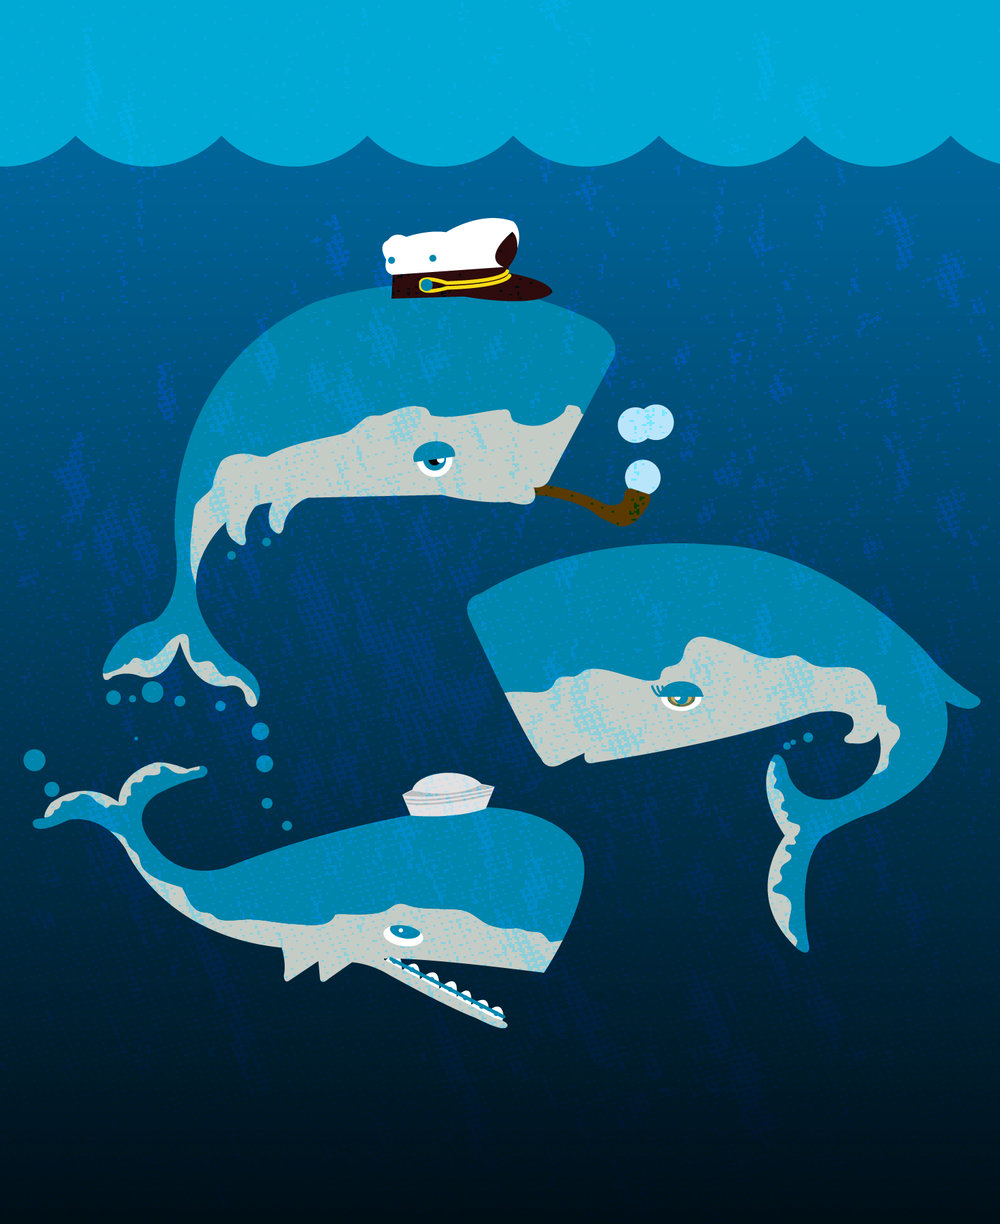 Family pod ilustration  Self guided digital illustration of a pod of whales intended for licensing.